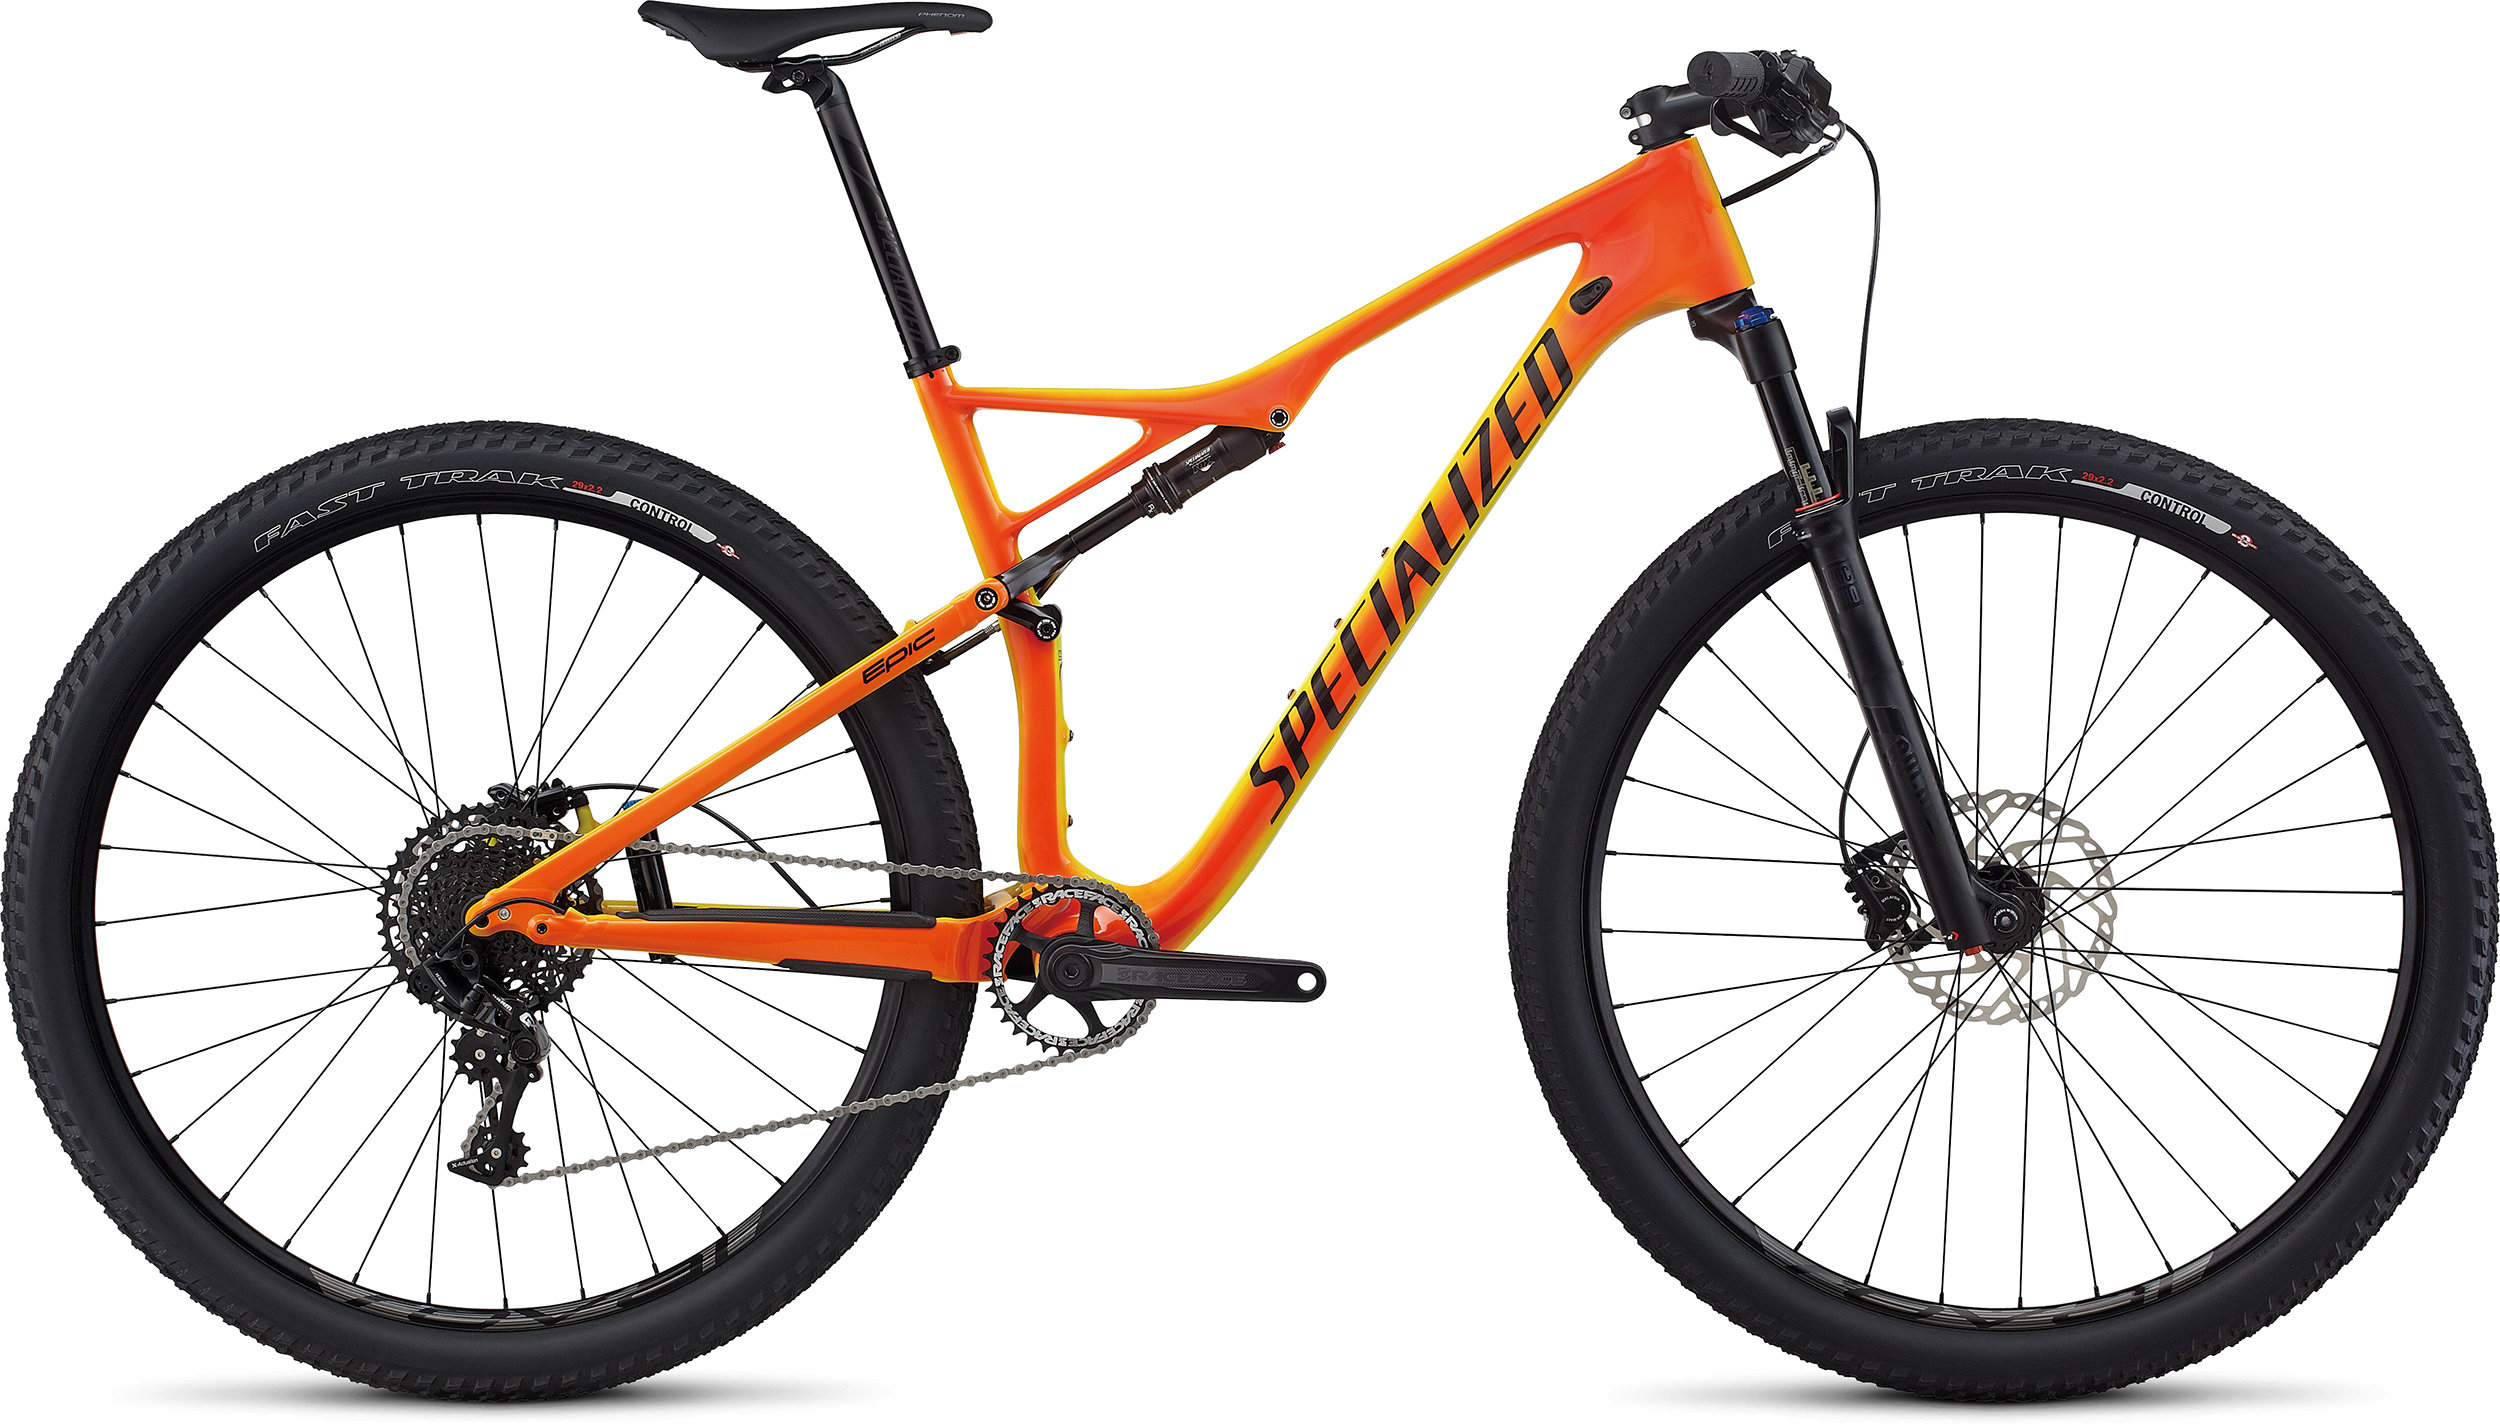 SPECIALIZED EPIC FSR COMP CARBON WC 29 TORCH MMORG S - Bikedreams & Dustbikes